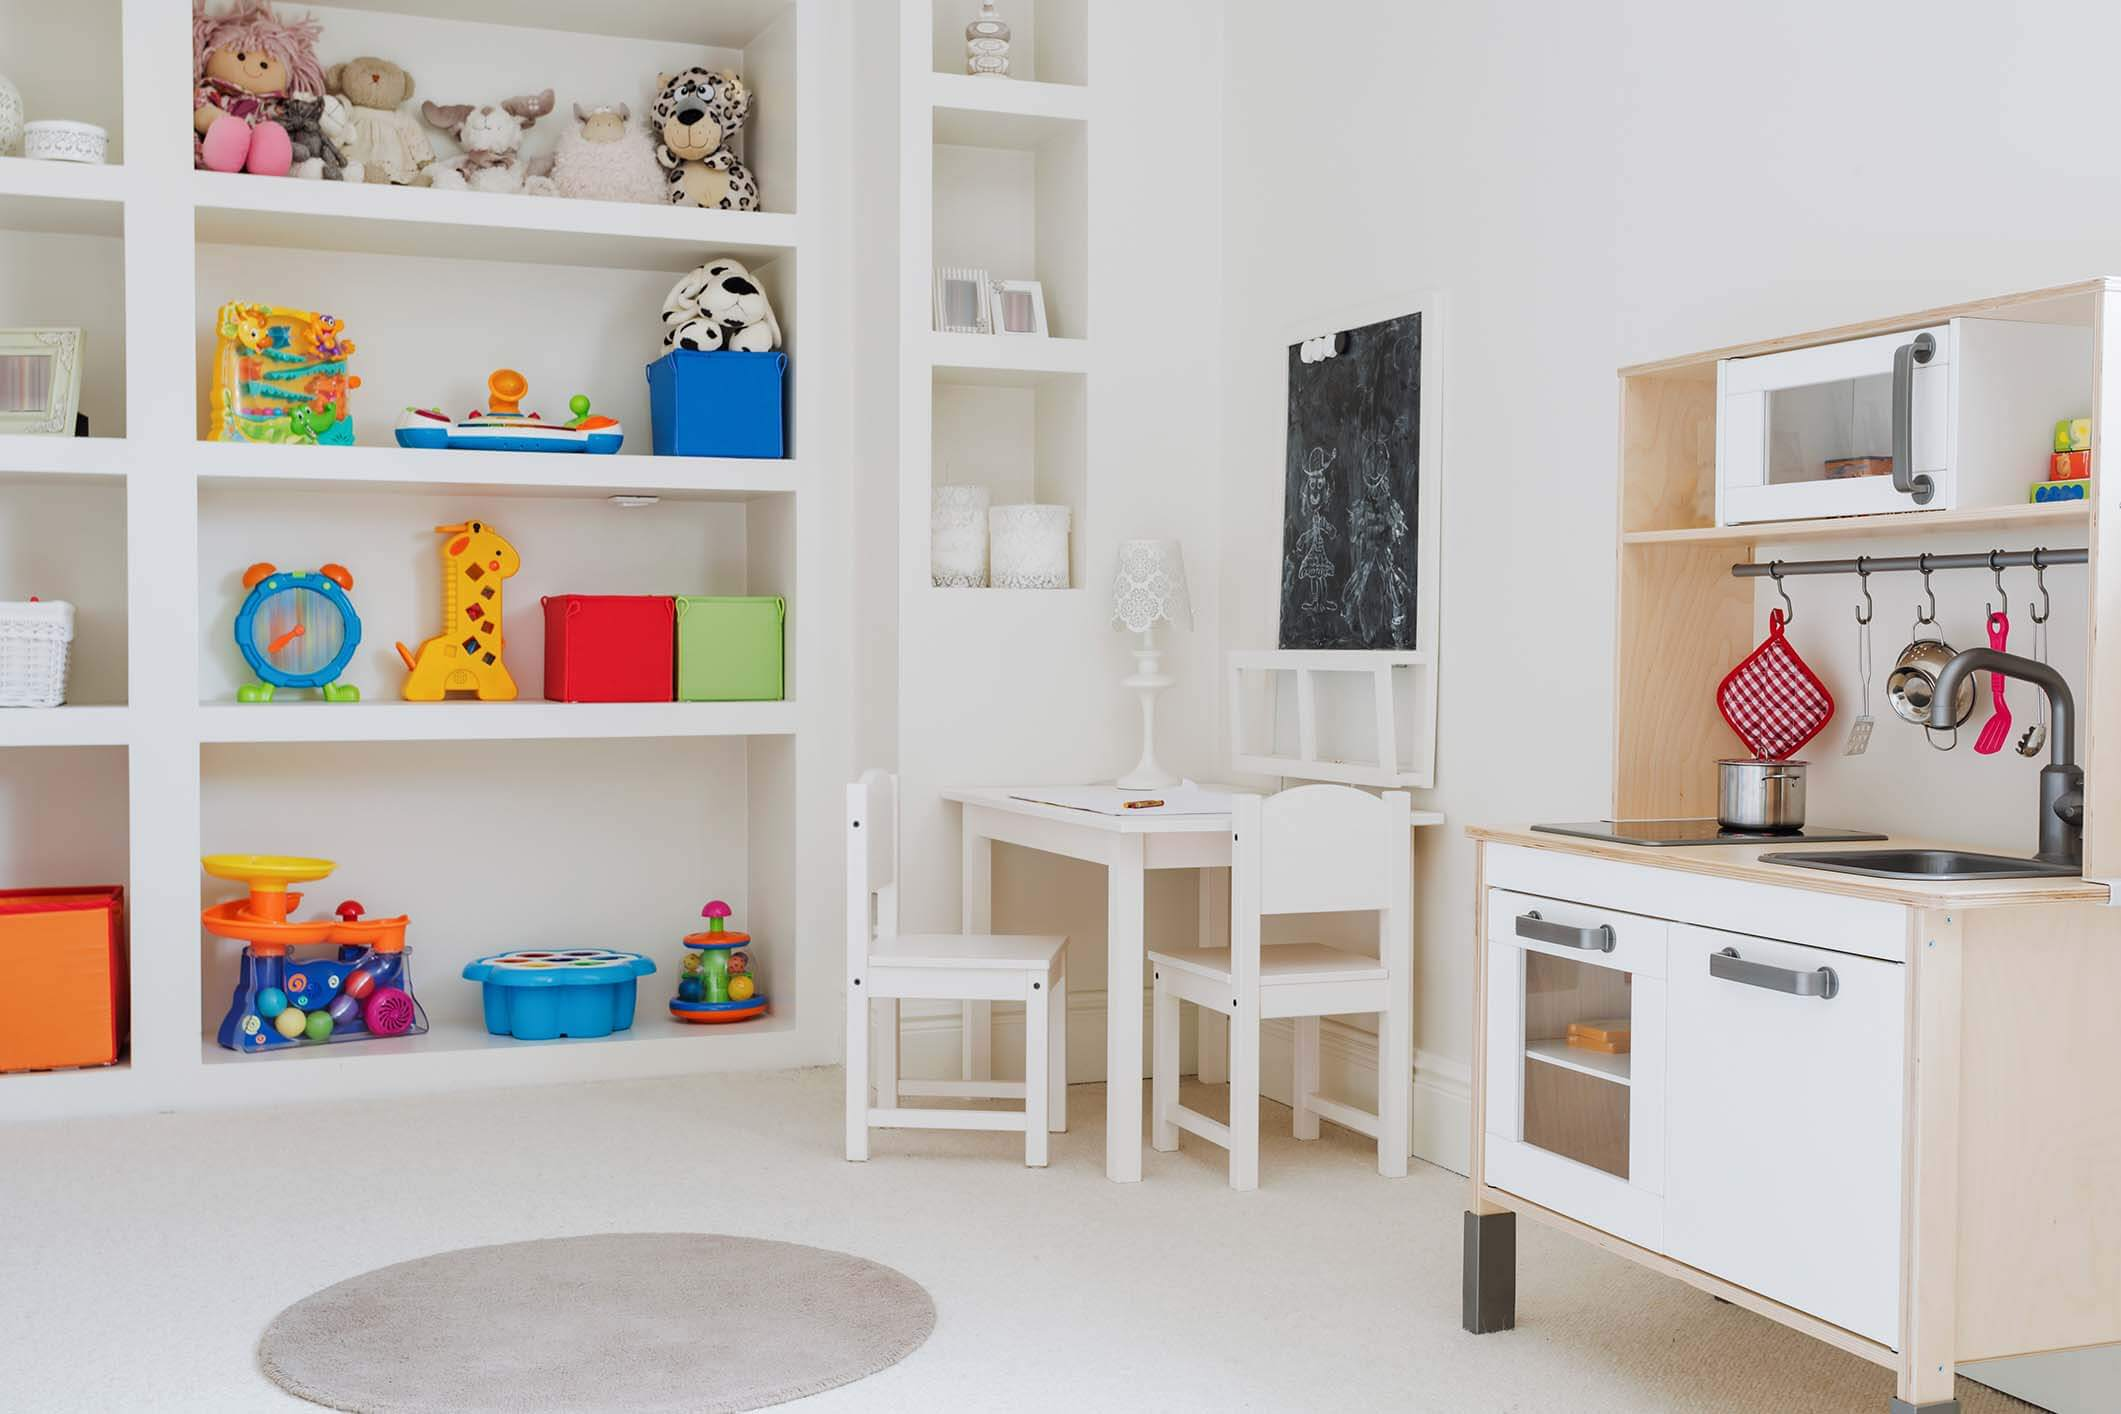 Home Organizer for Play Rooms